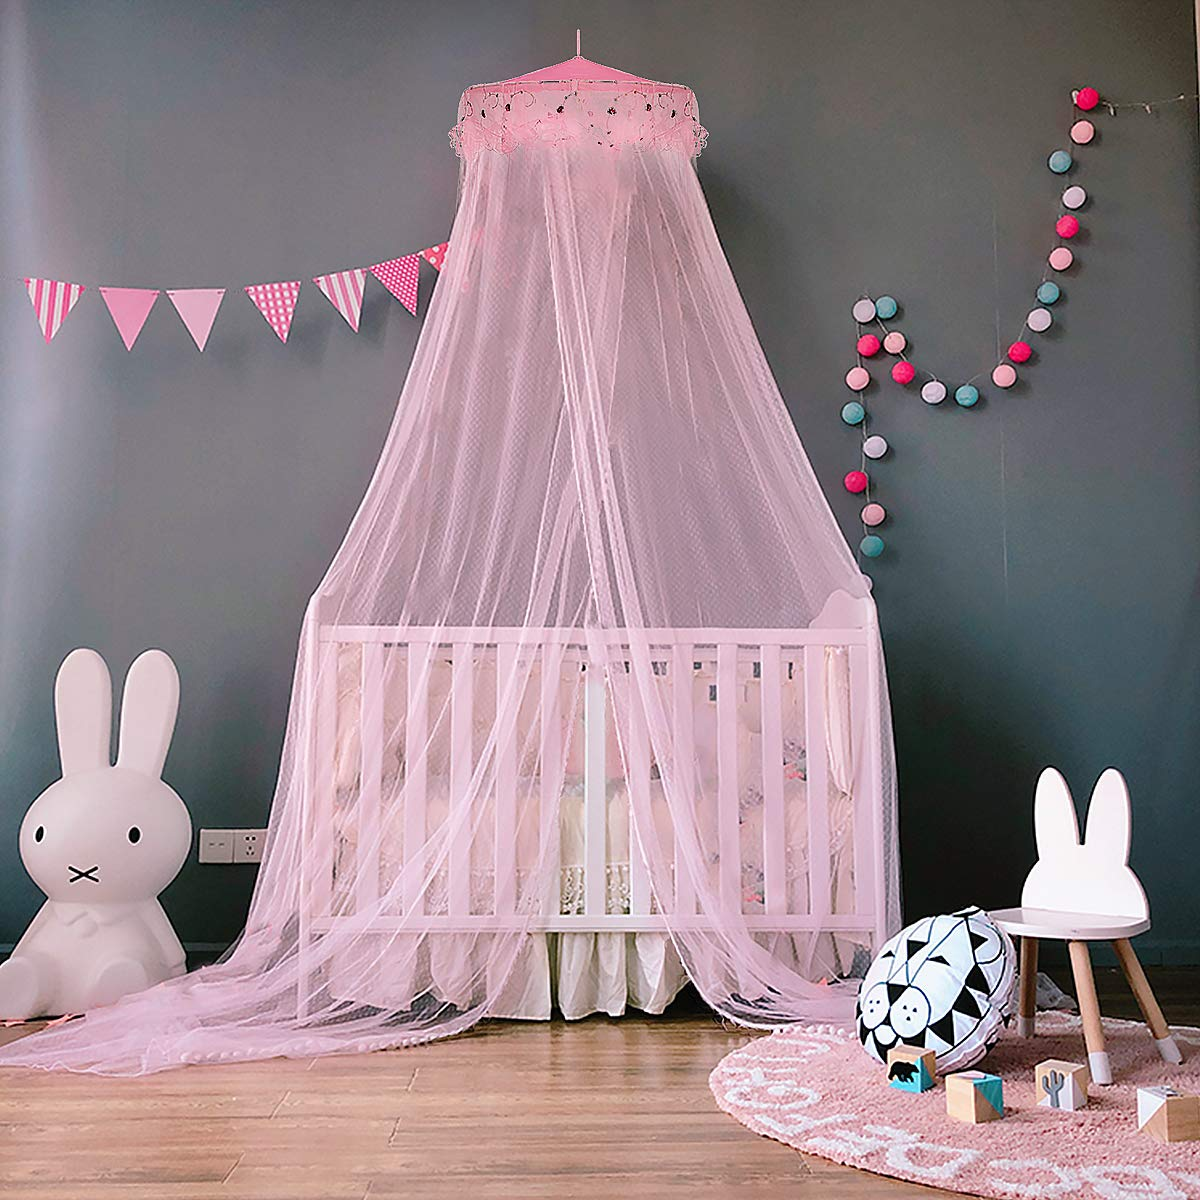 Jet Even Bed Canopy Canopy Mosquito Repellent Insect Net for Baby Kid Home or when on the Go Double High 260/cm beige